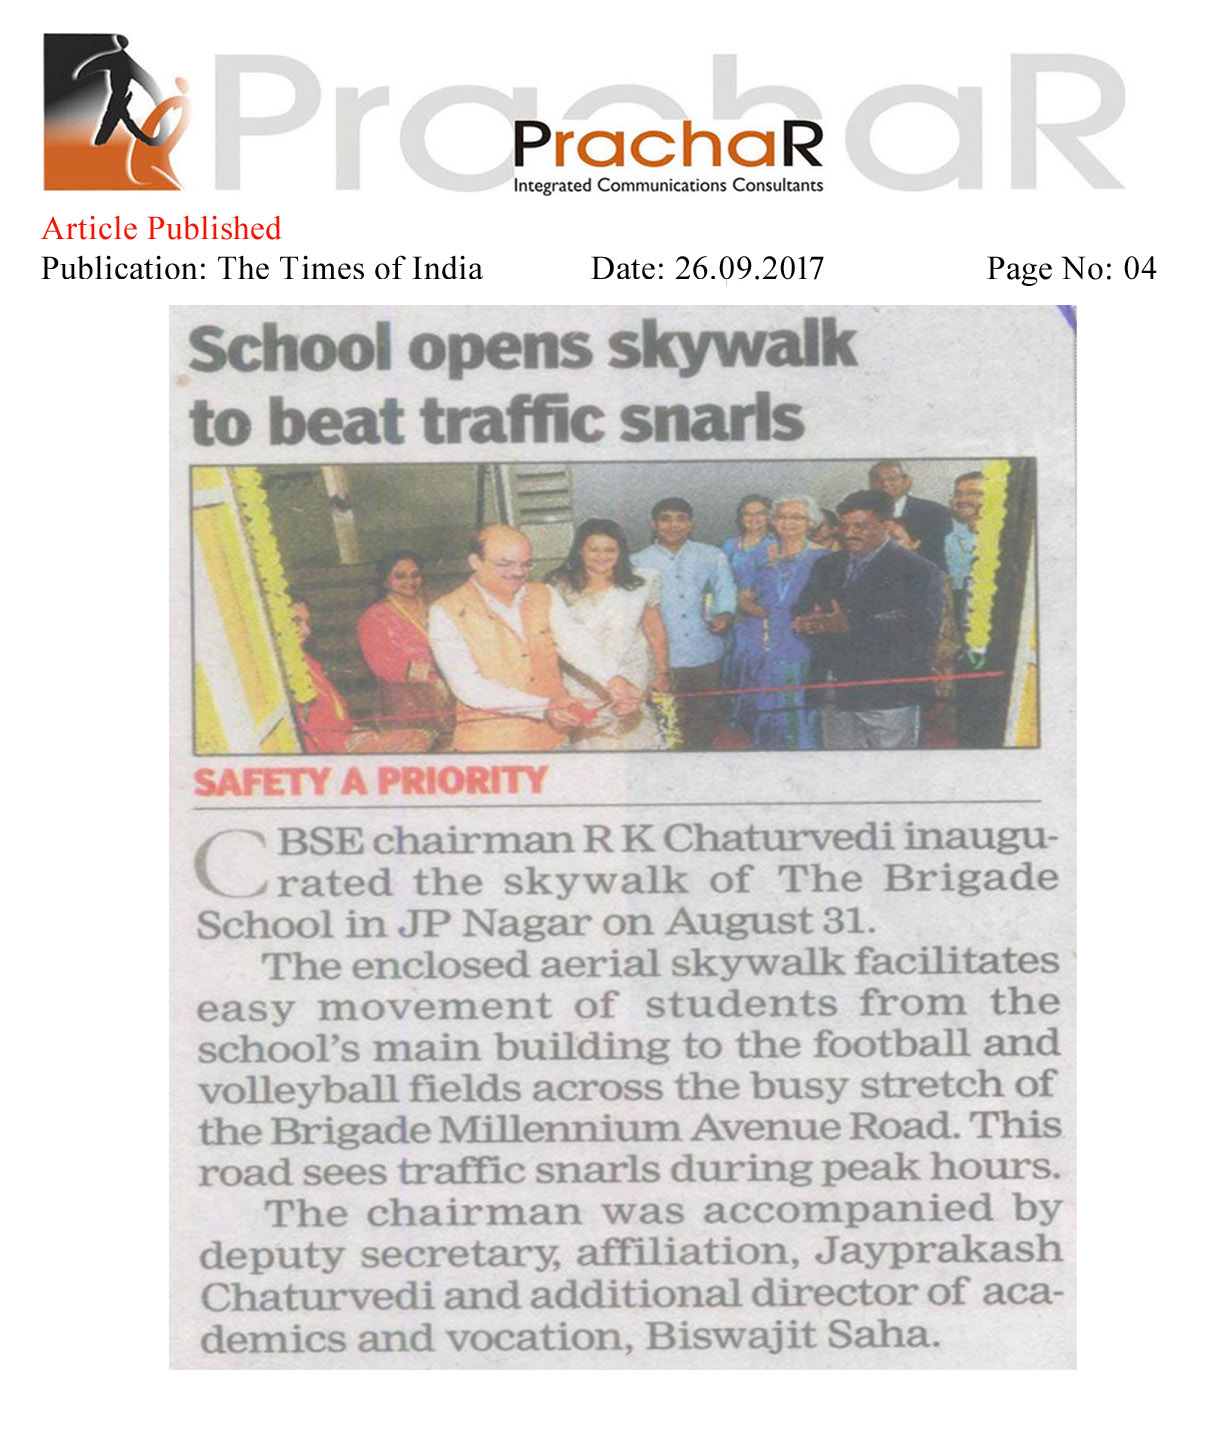 School opens skywalk to beat traffic snarls—The Times of India